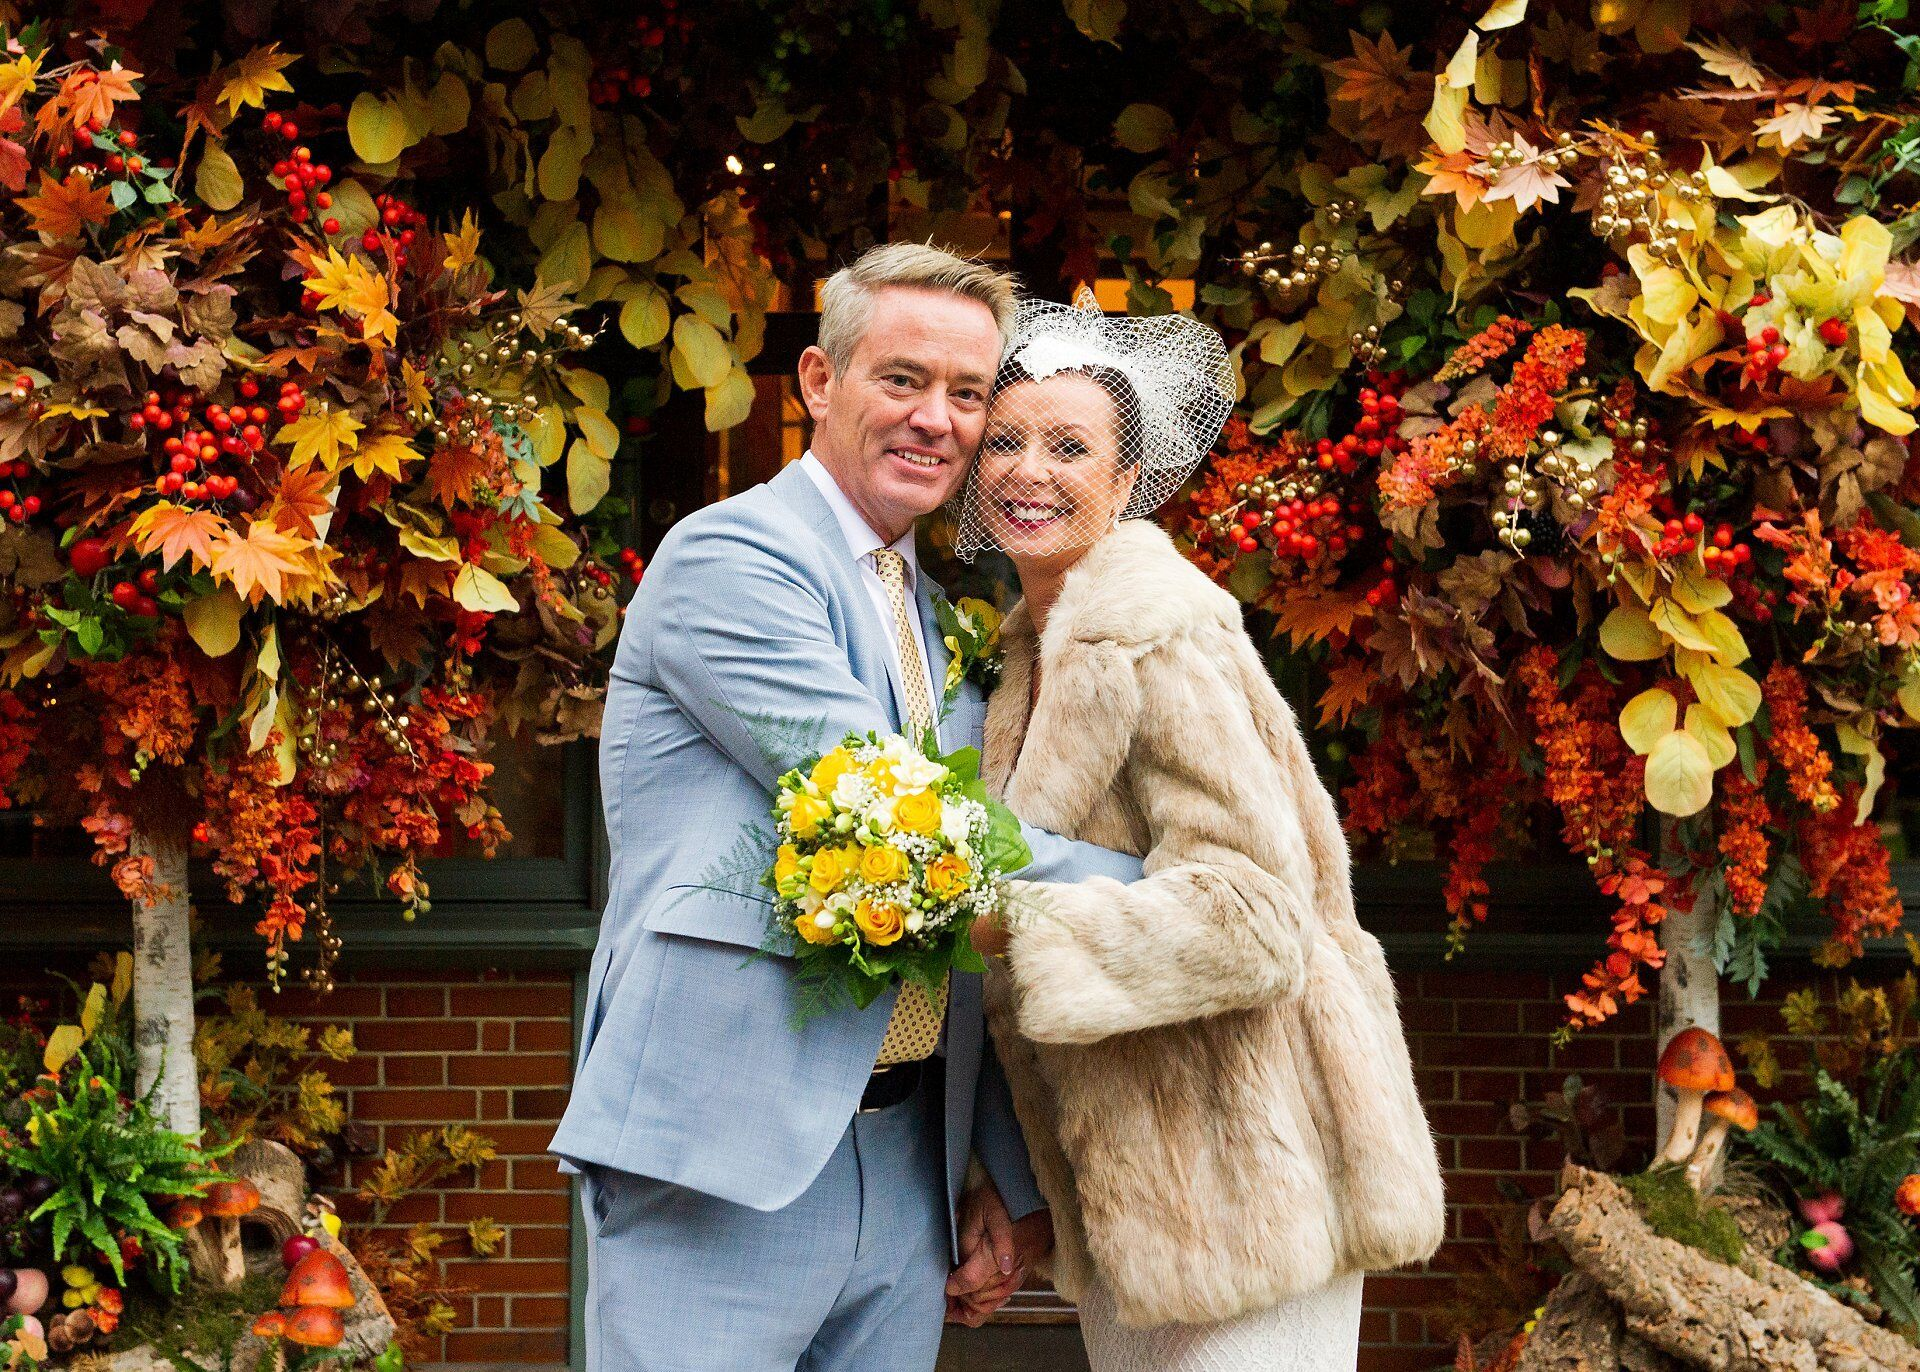 Ivy Chelsea Garden wedding photographer Autumn decorations on King's Road